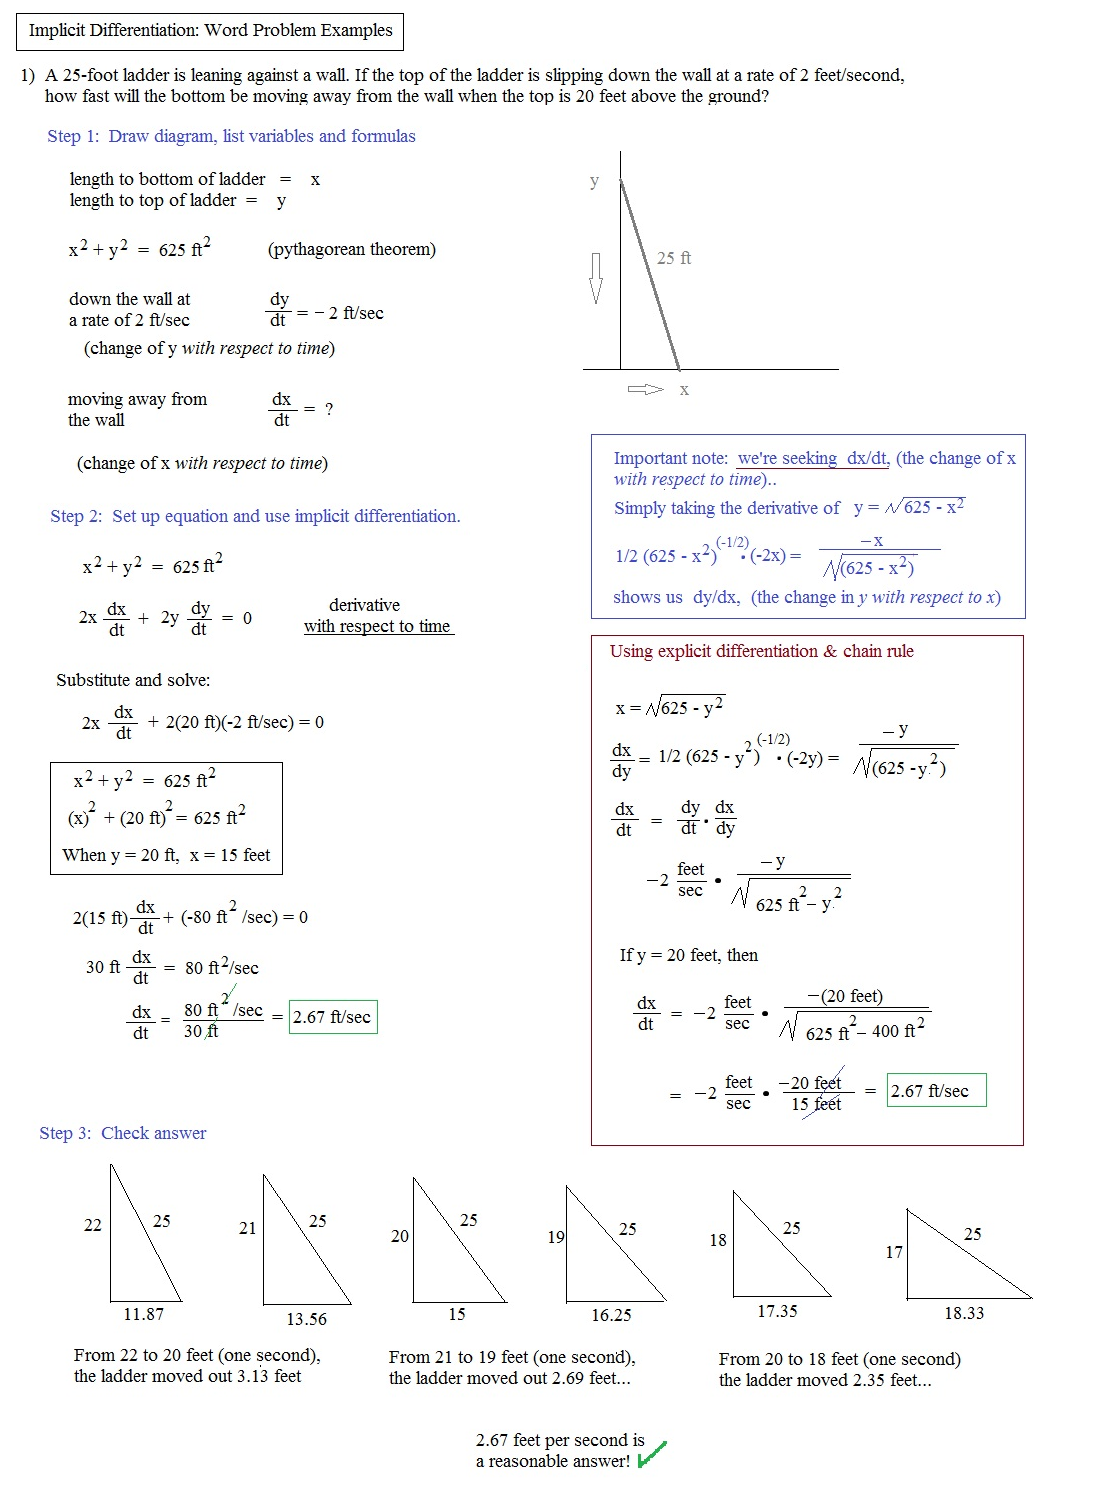 worksheet Trigonometry Word Problems Worksheet trigonometry word problems worksheet kuta math plane implicit differentiation notes and examples worksheet